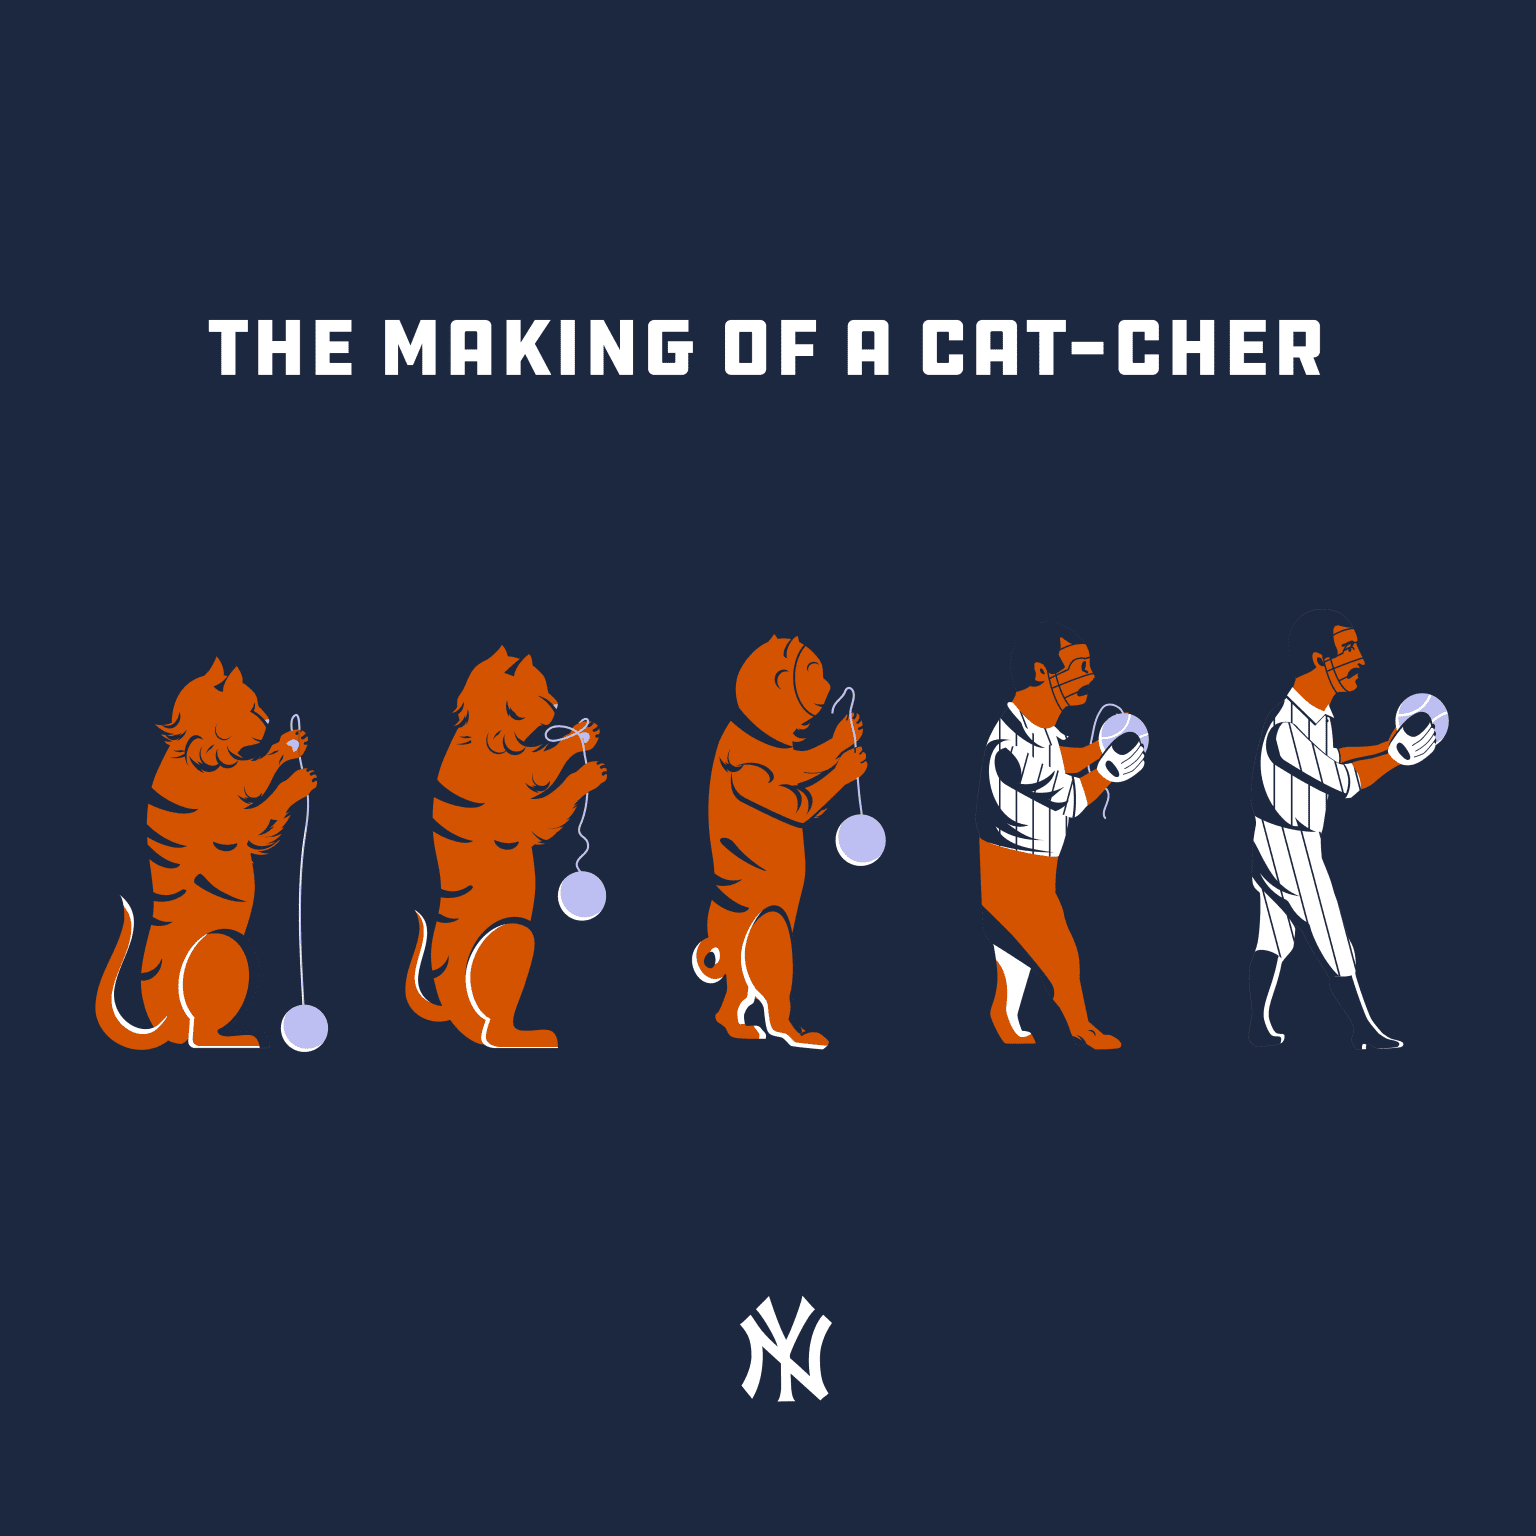 Design for NY Yankees for International Cat Day